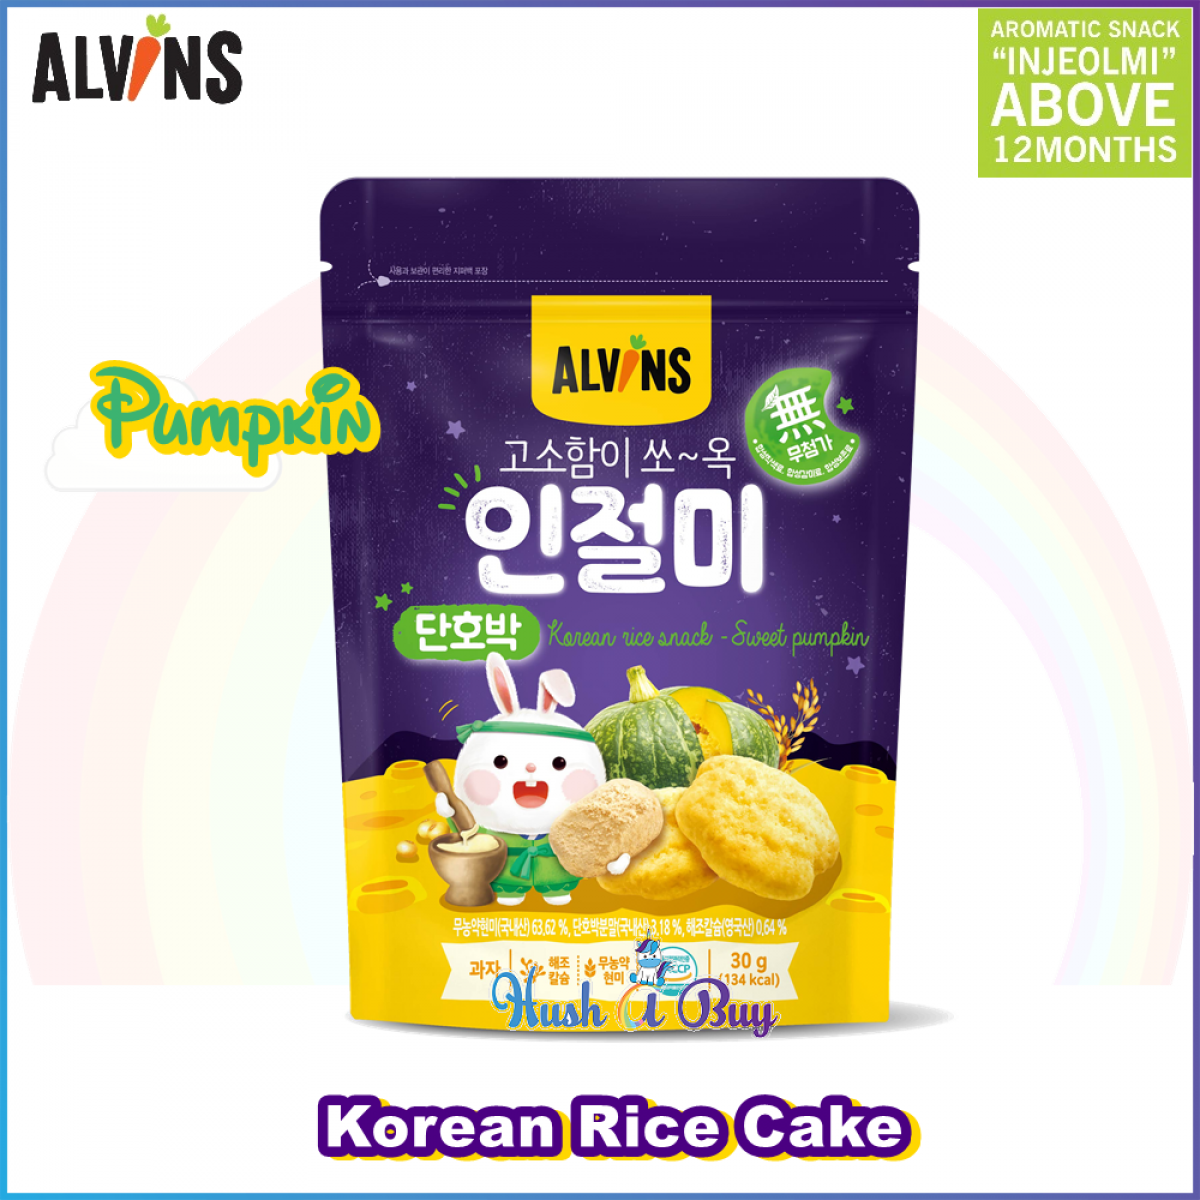 ALVINS Korean Baby Rice Cake Injeolmi for 12 Months ( 3 Flavors available)